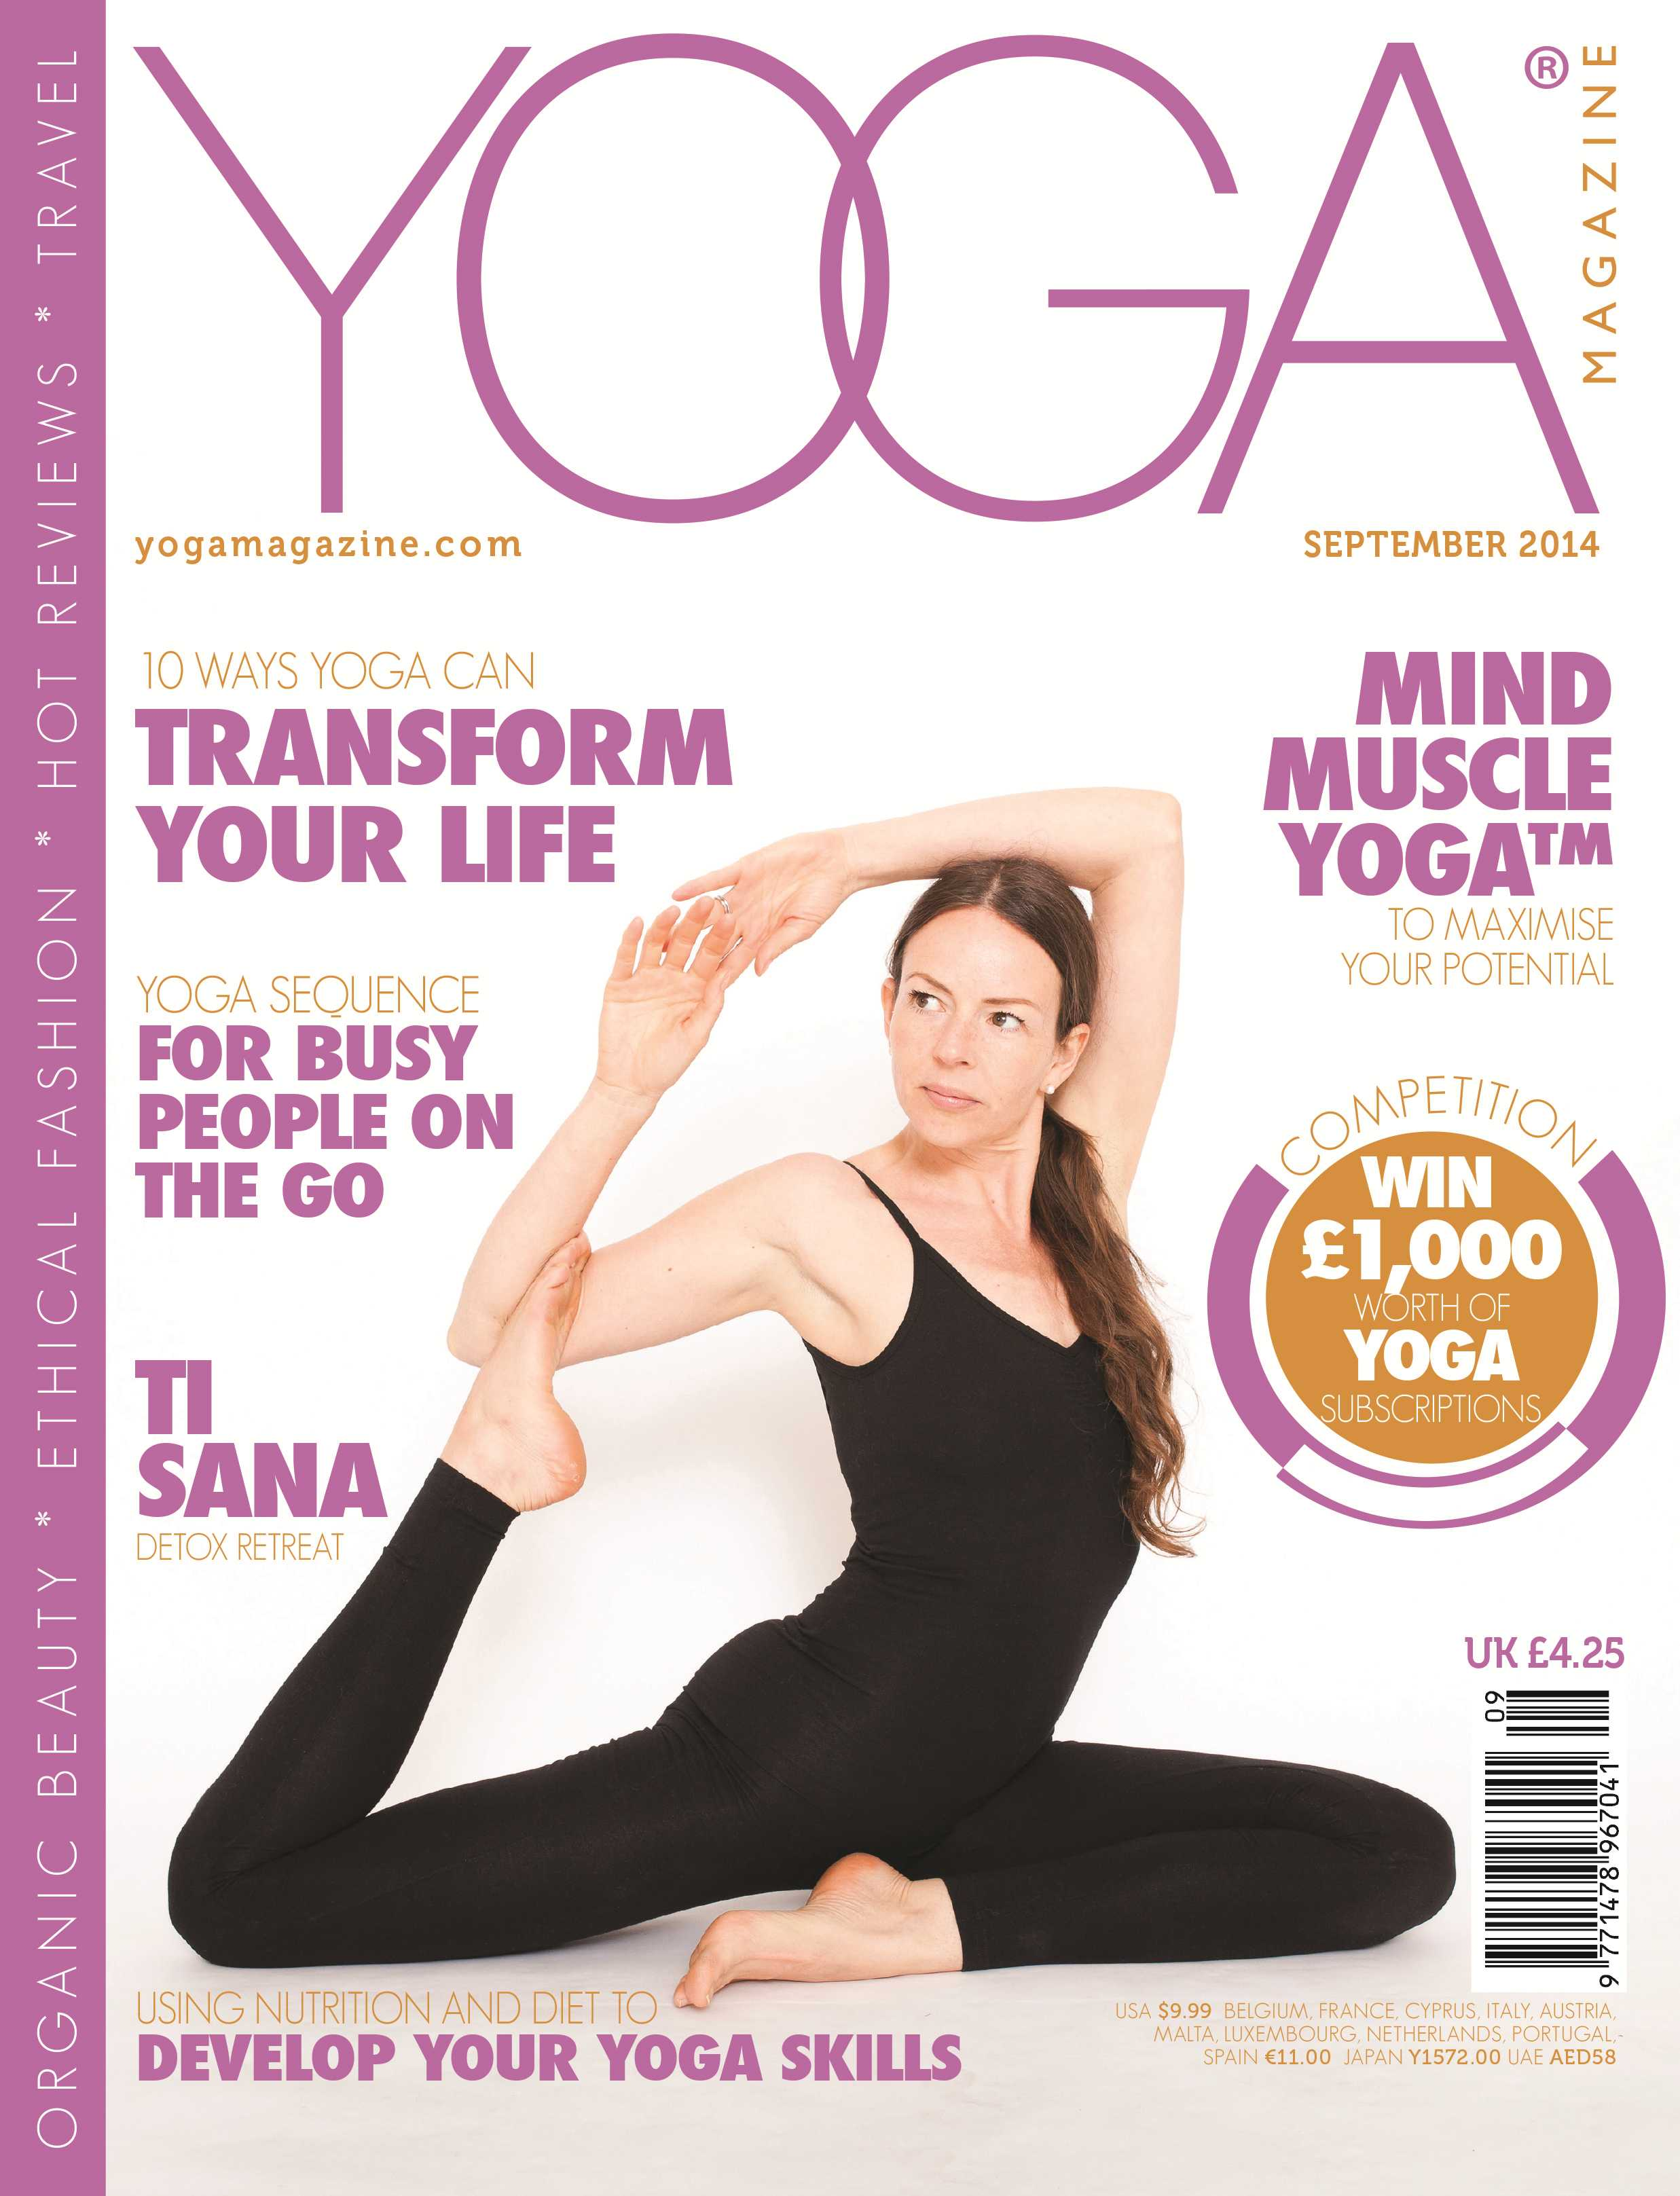 Yoga Magazine (Sept 14)